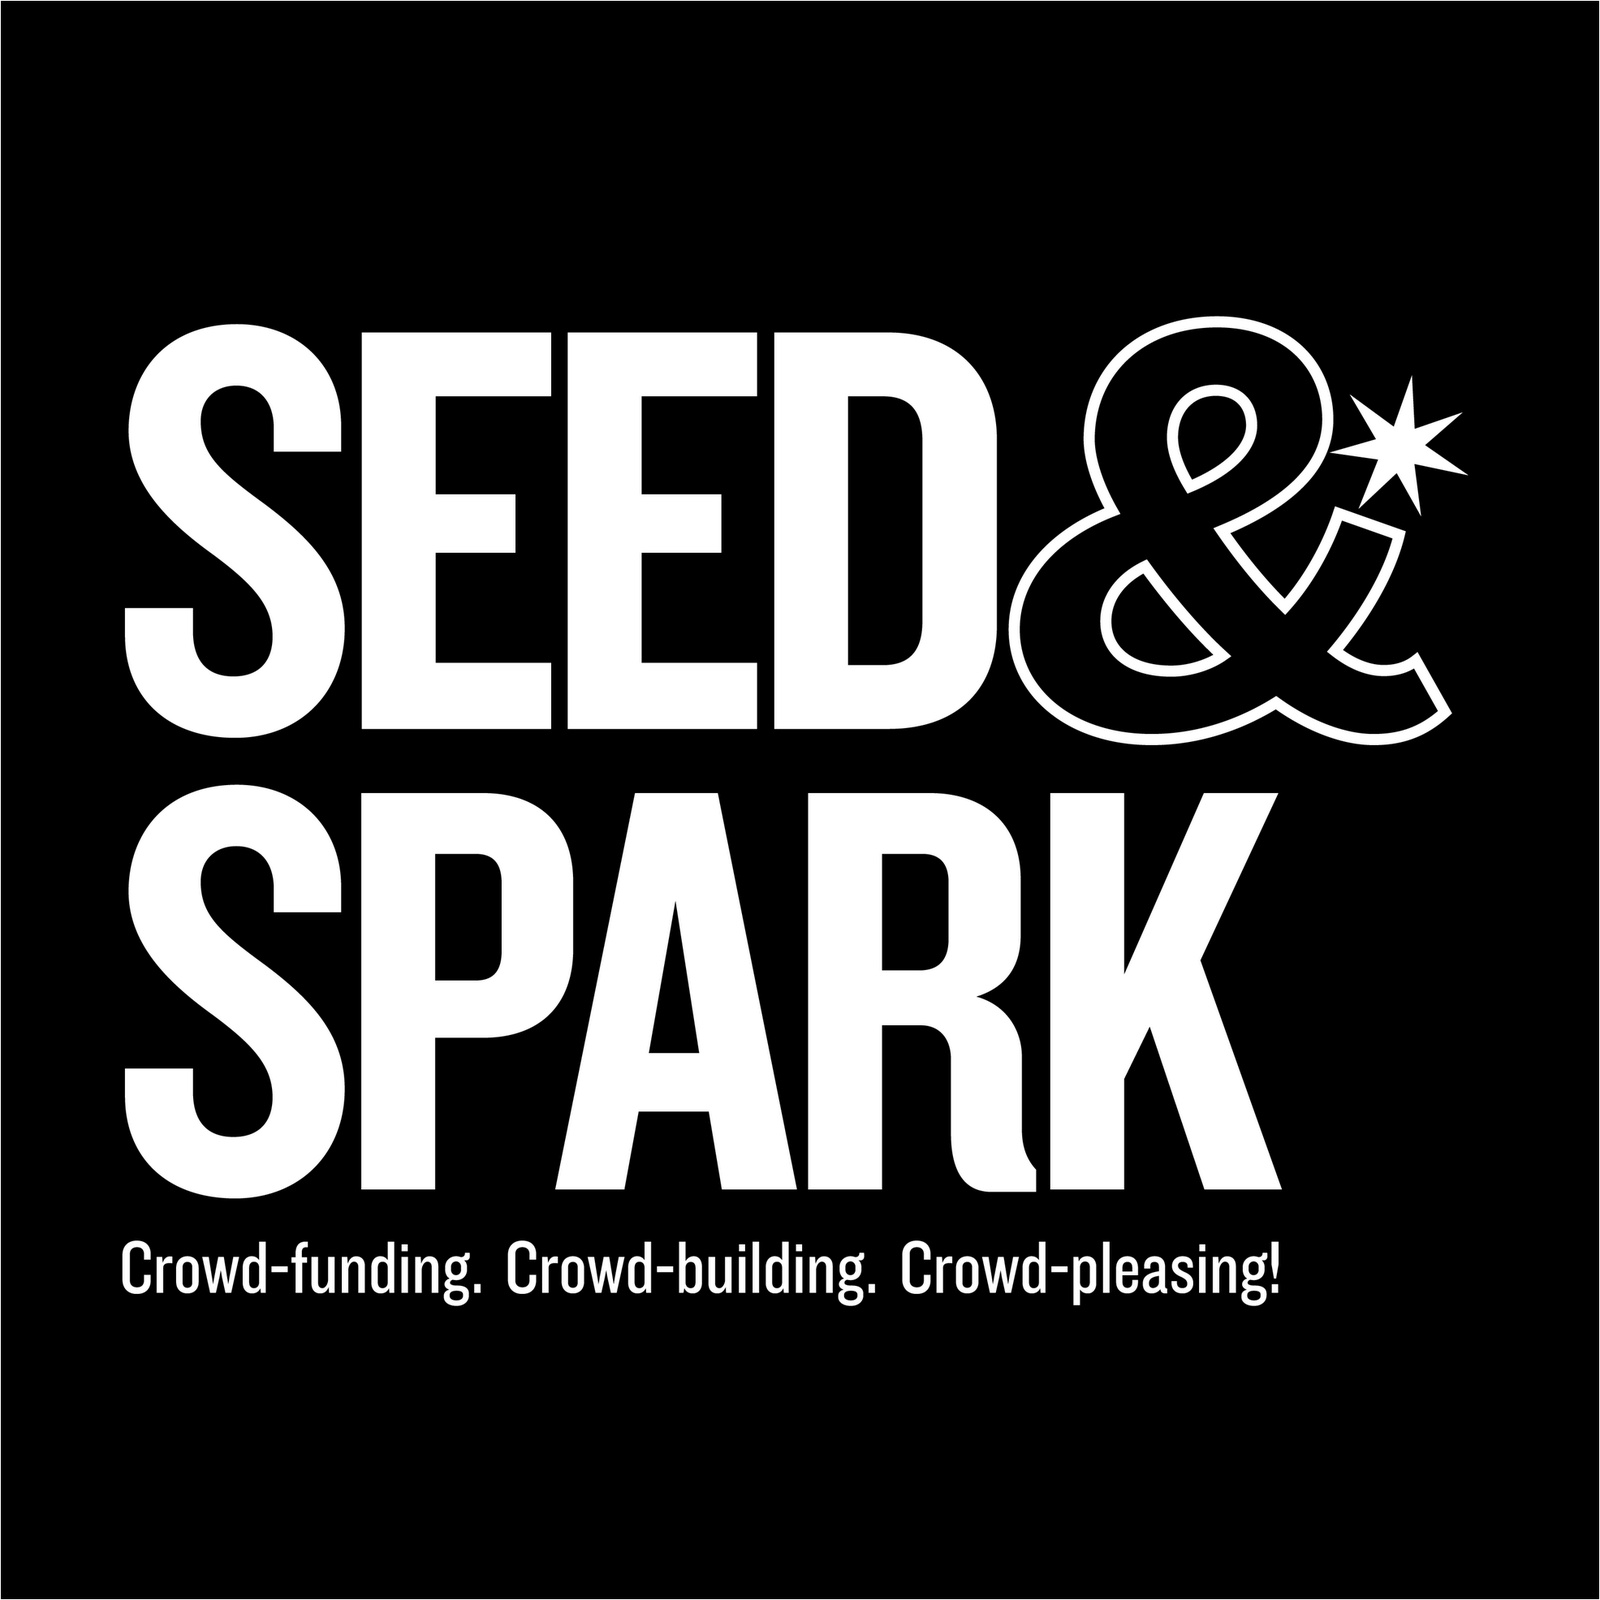 Seed and Spark is an incredible company of amazing people who are changing the landscape of independent film funding, crowdsourced funding, independent distribution and independent exhibition. They are also a company who believes in educating and empowering the filmmaker and providing opportunities for networking and collaboration. They are truly one of the great teams making an impact in modern indie filmmaking. Also check out their magazine, Bright Ideas!